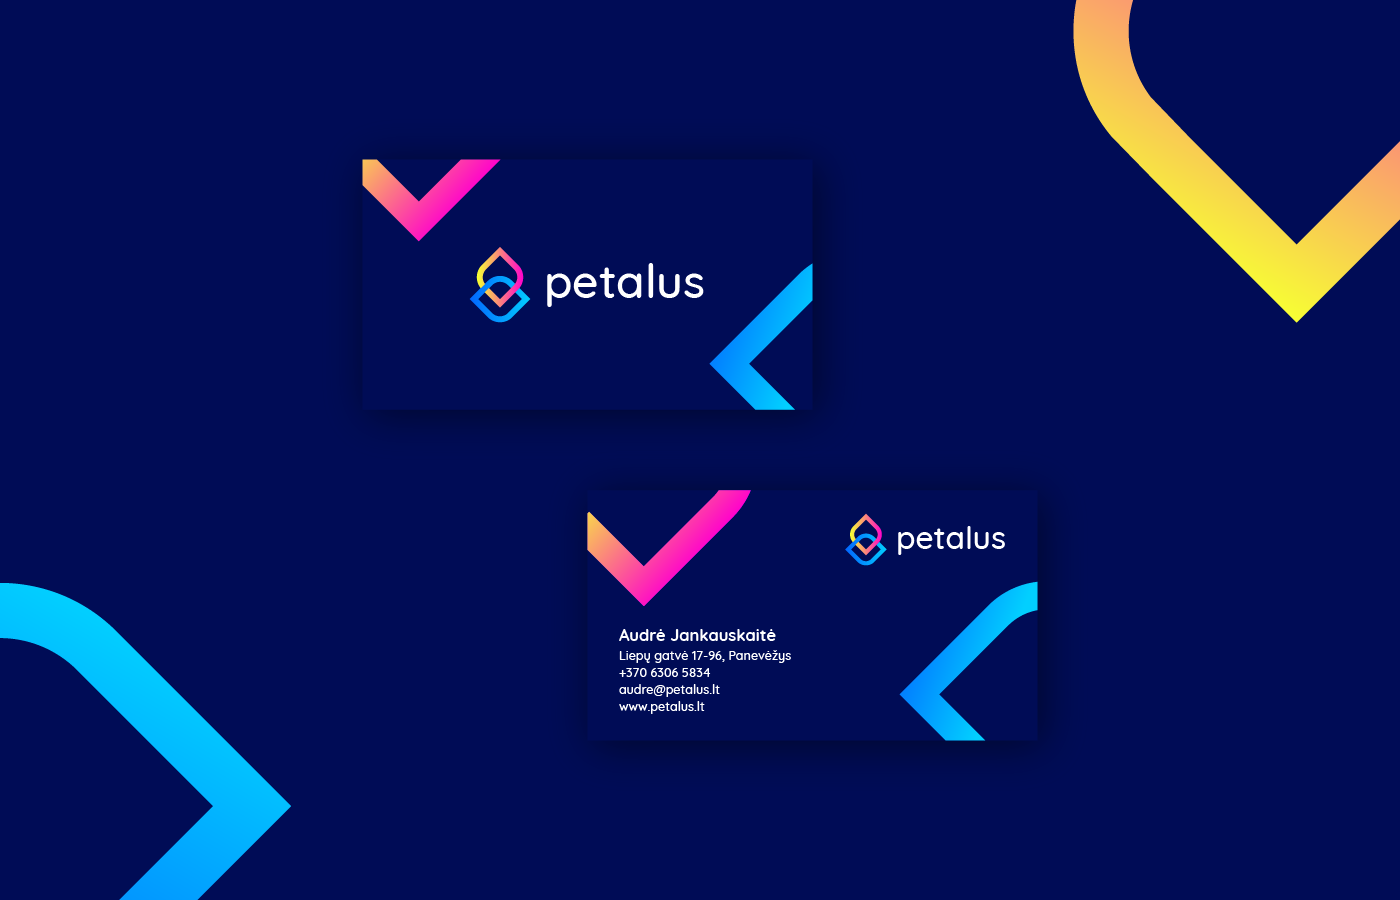 Petalus business card